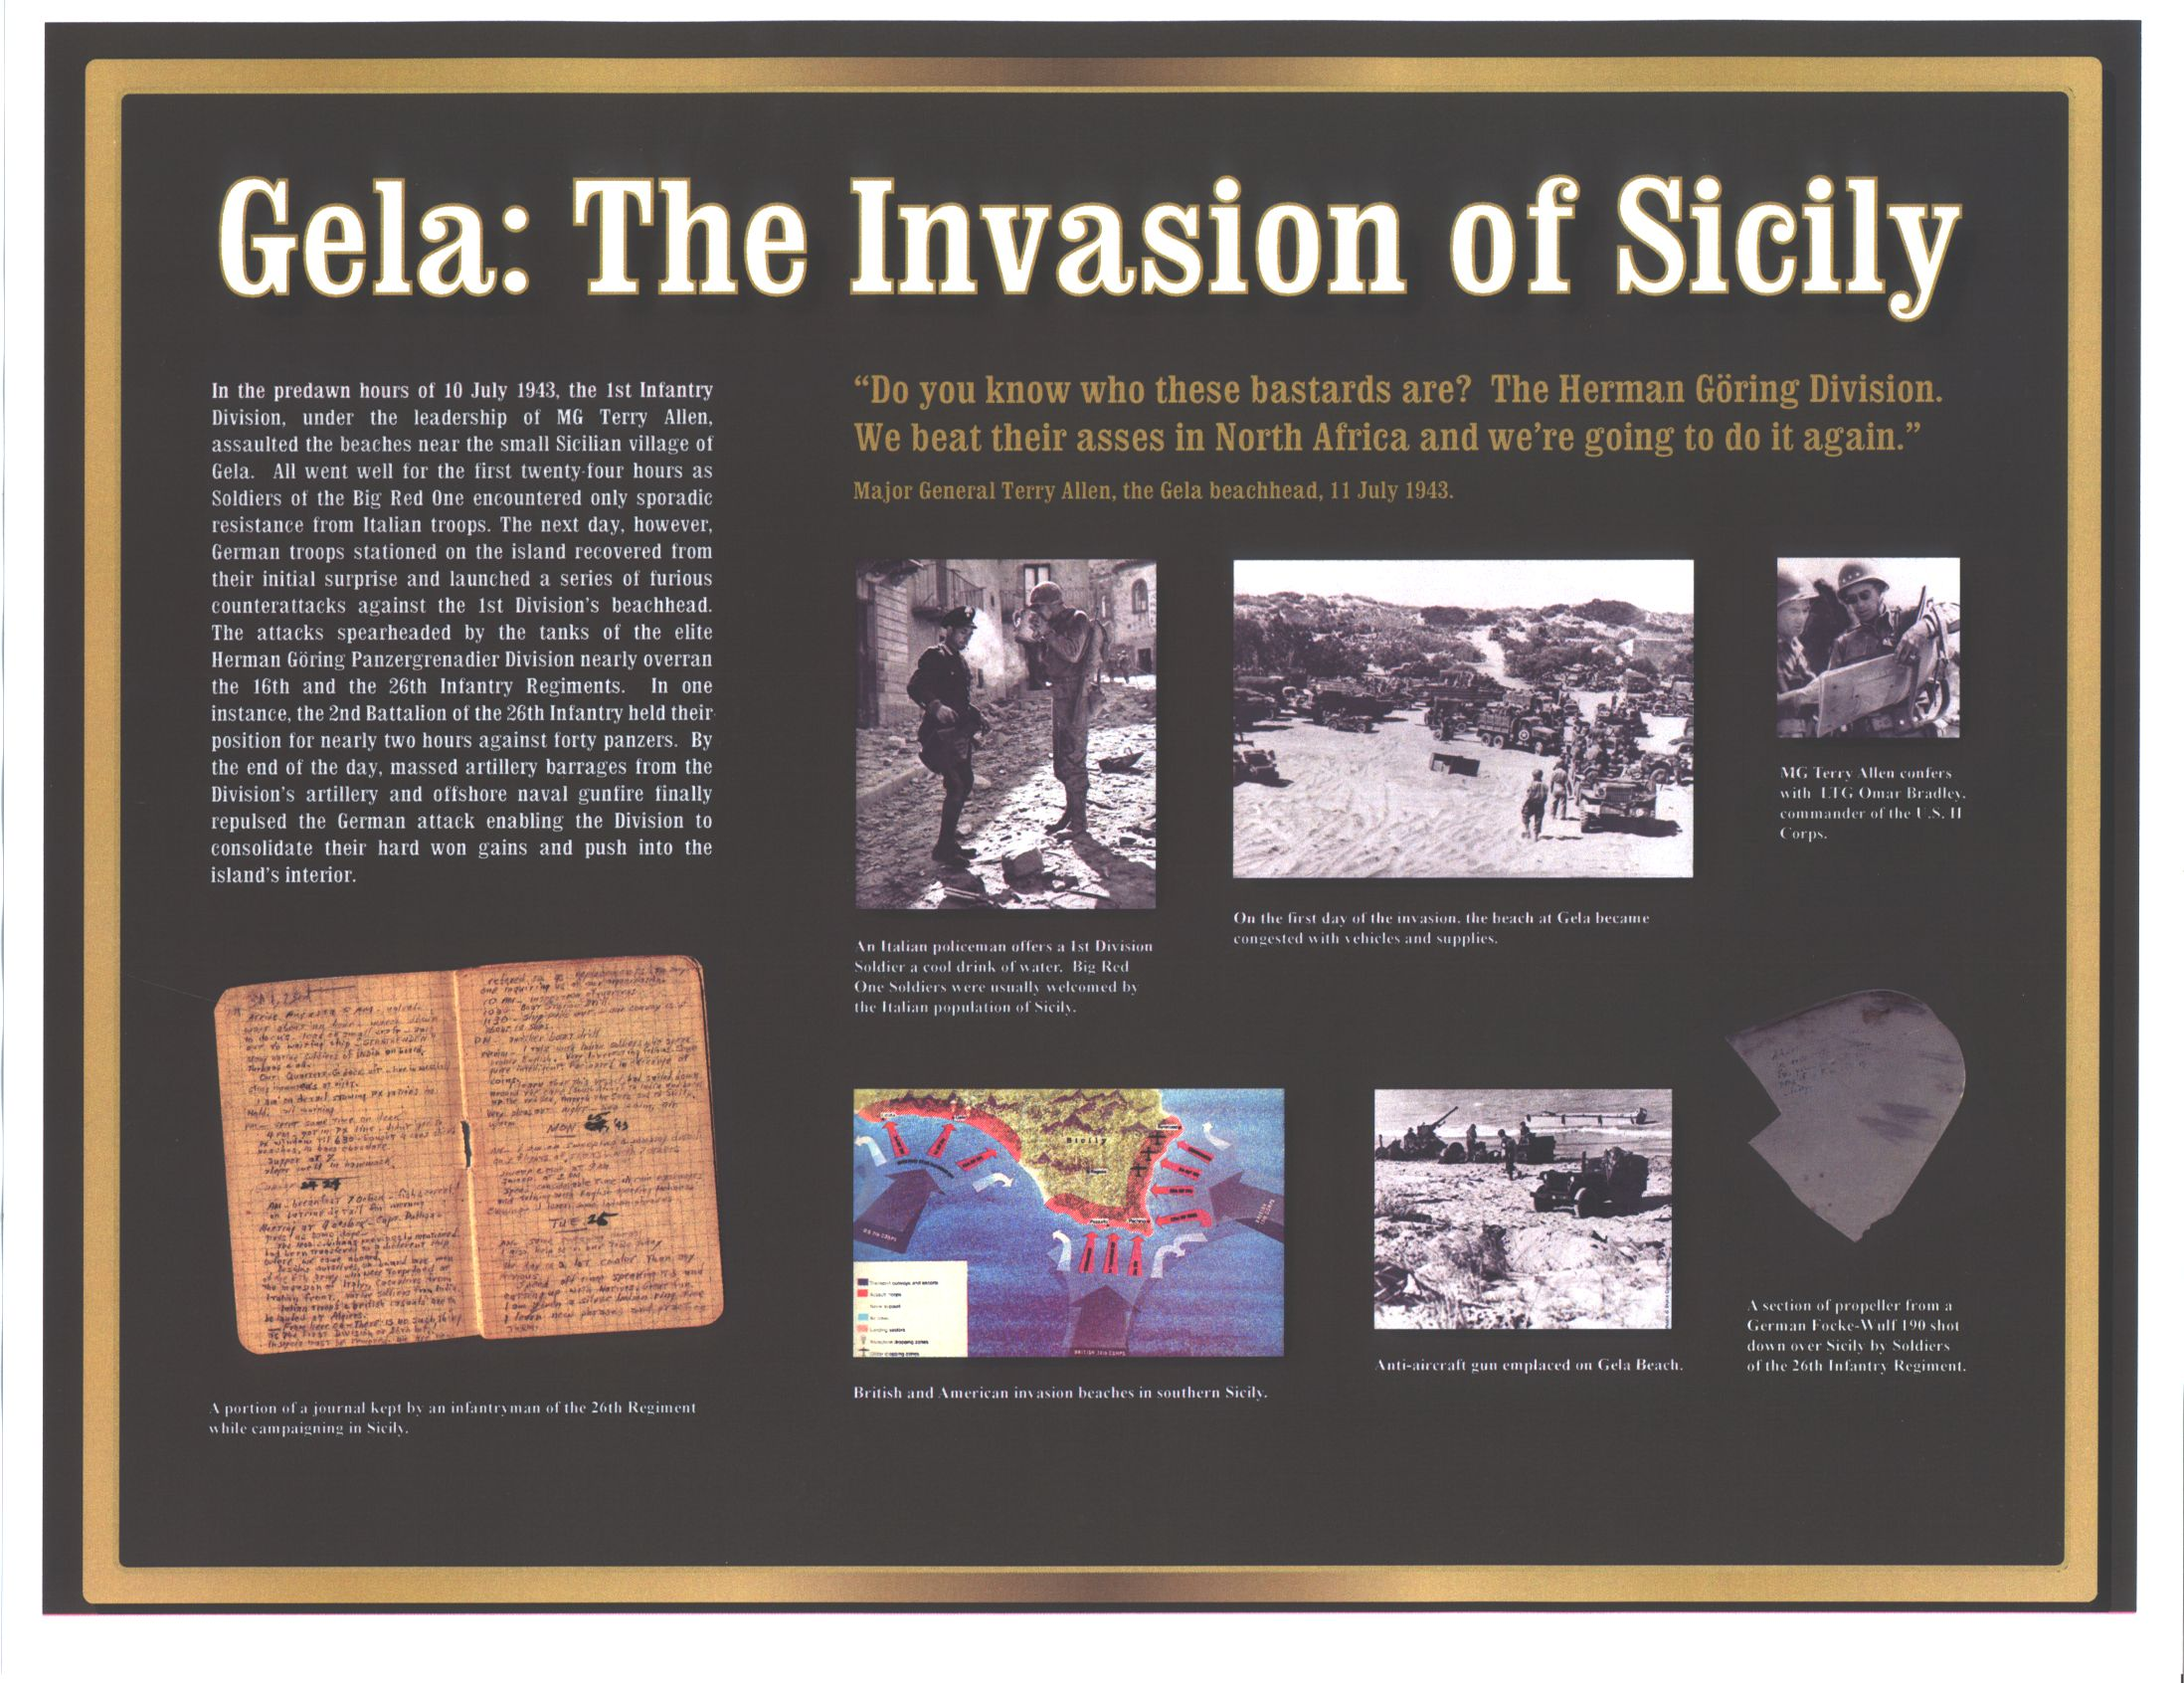 the mistake of invading sicily at the request of egesta